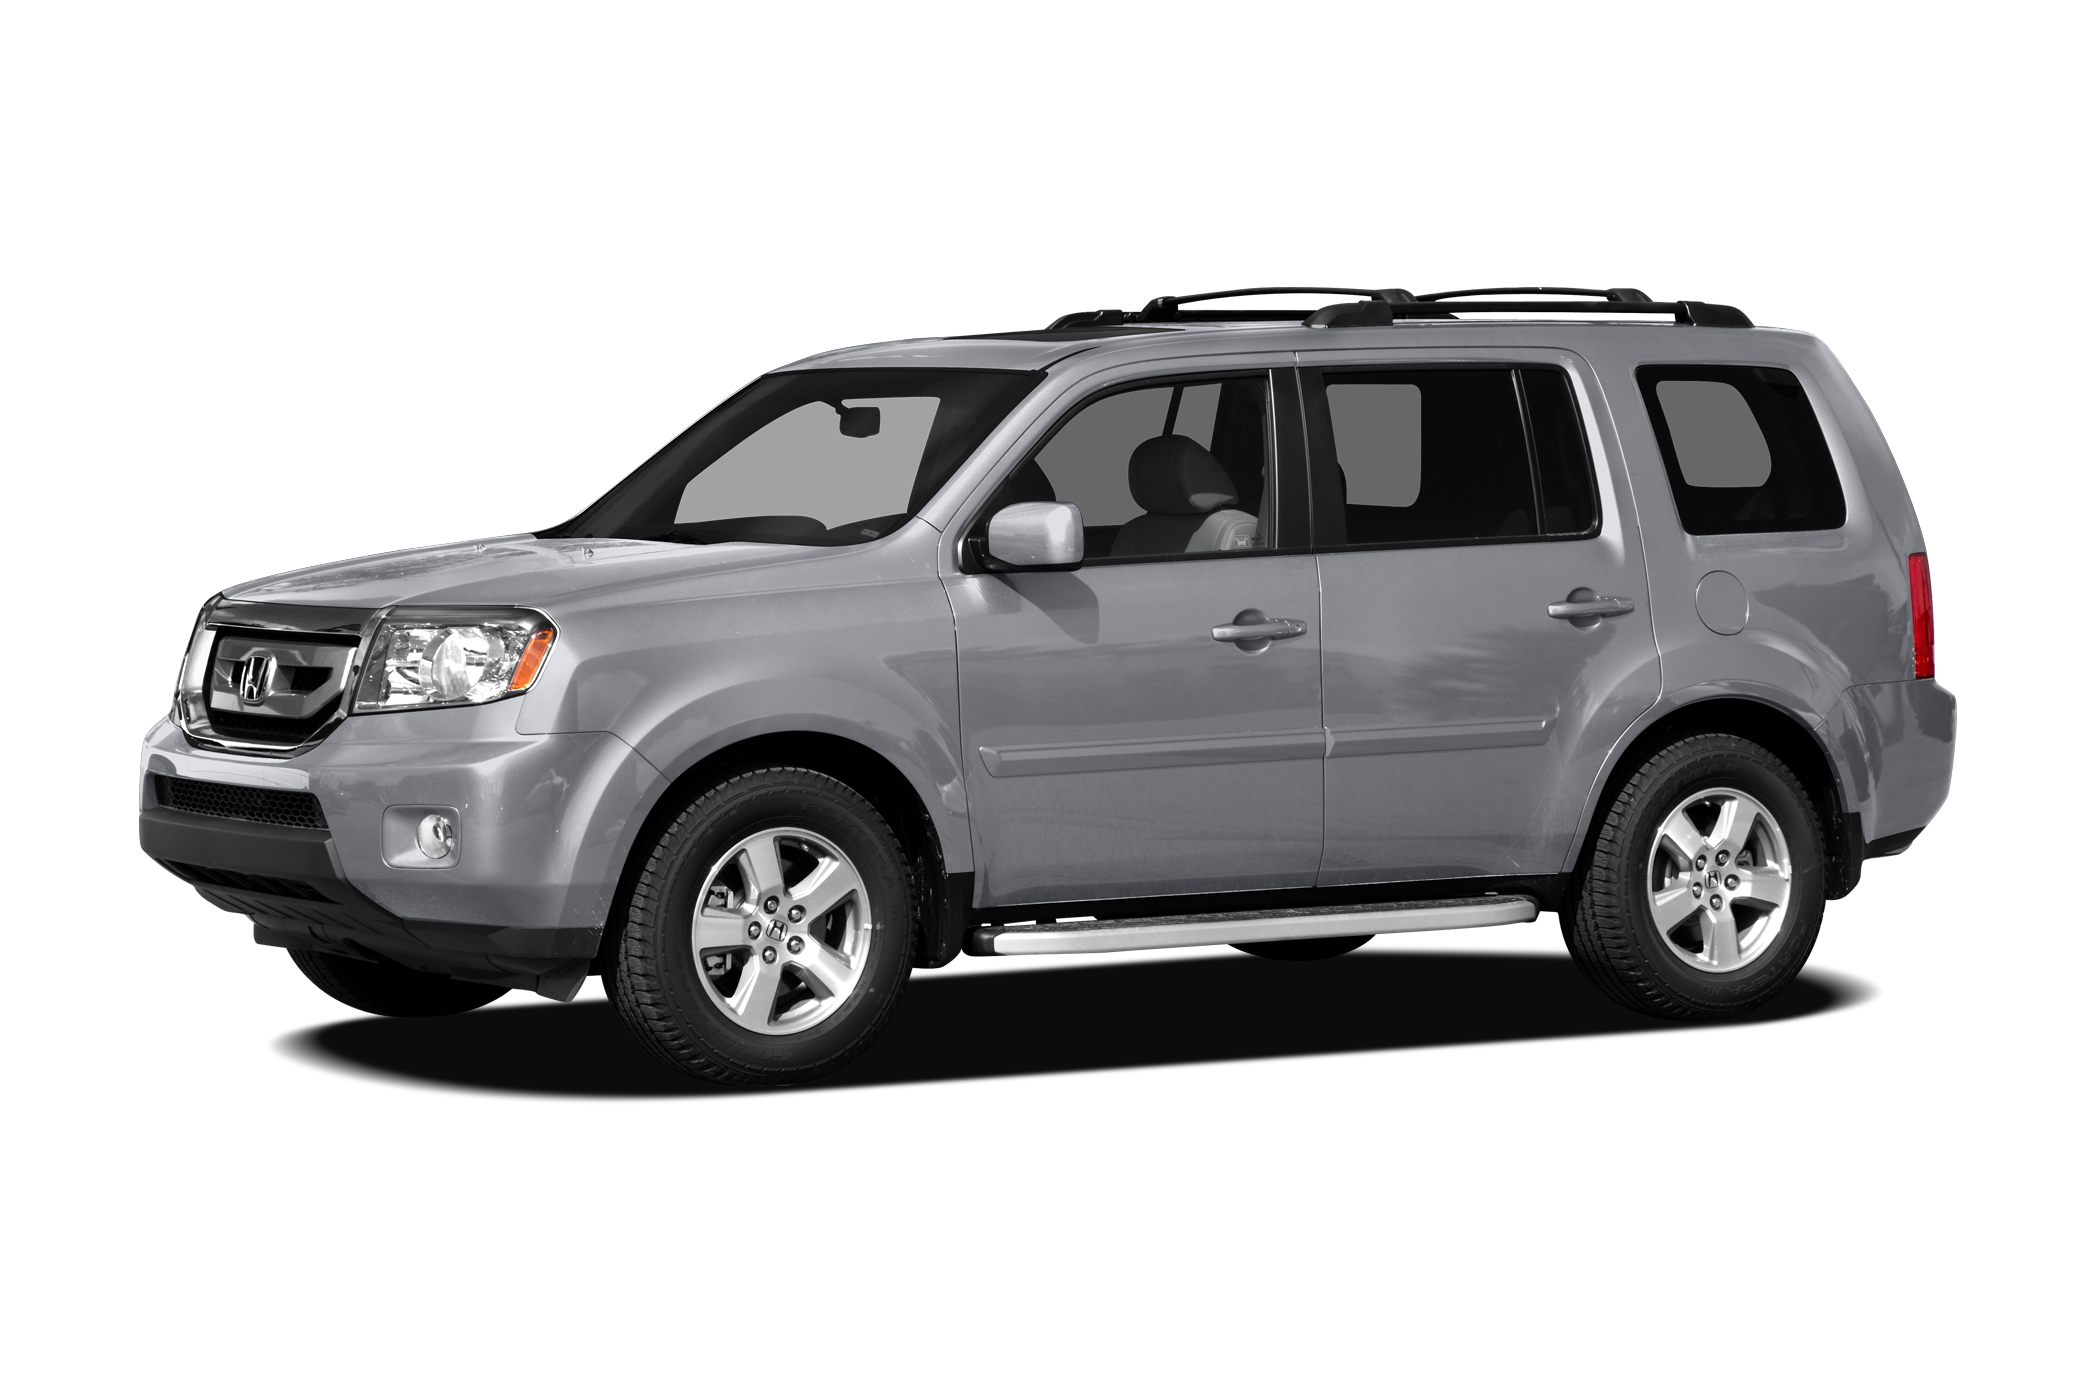 2009 Honda Pilot Touring SUV for sale in Versailles for $17,000 with 125,112 miles